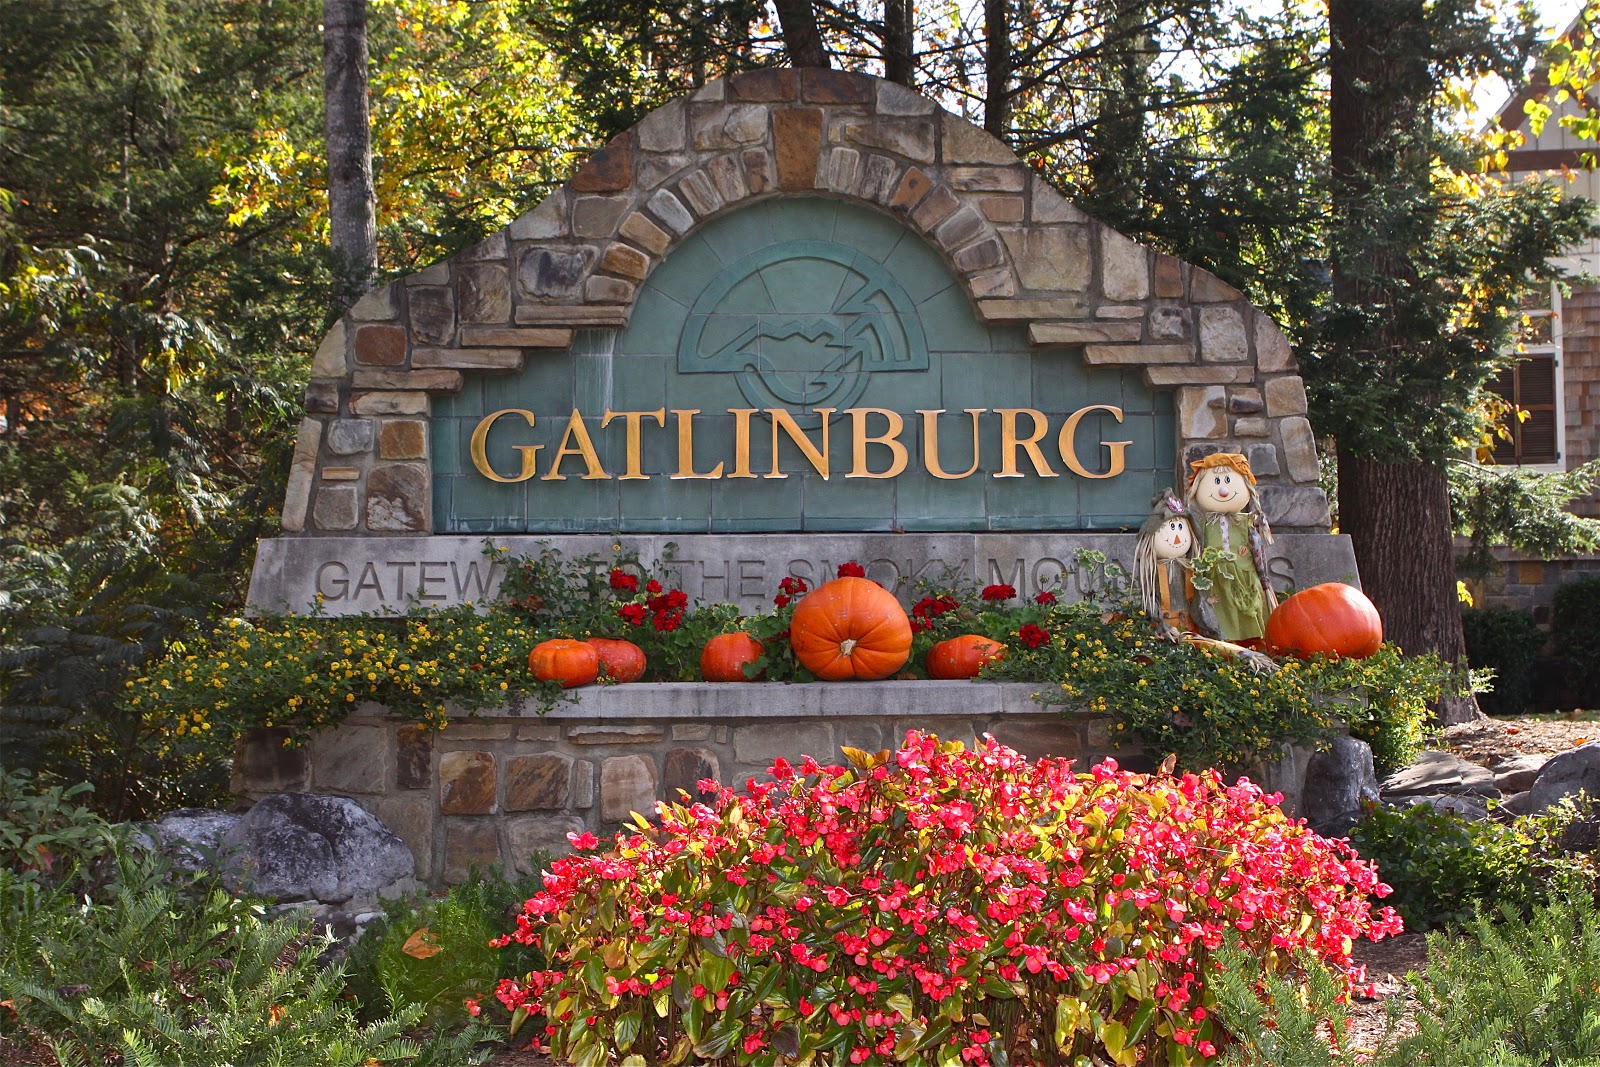 Cabins in gatlinburg tn decorated for christmas - Fall And Christmas Tablecloths And More